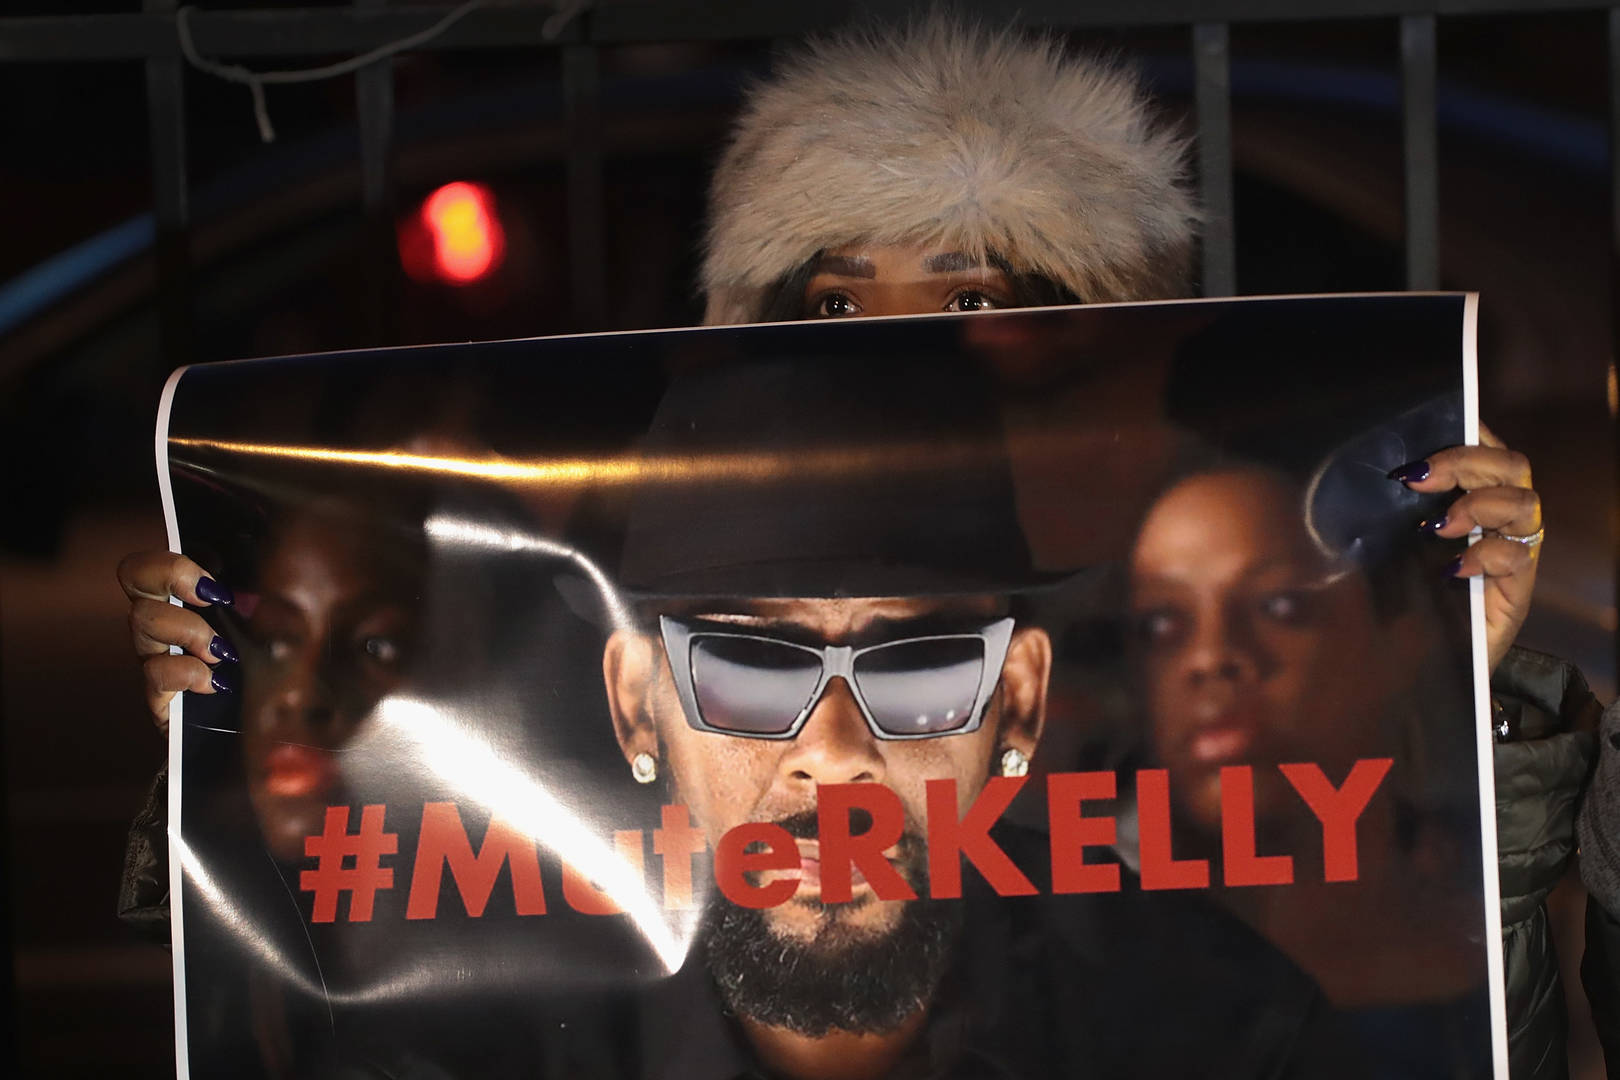 R. Kelly's Popularity Thrives In Germany Despite Sex Scandal: Report 1